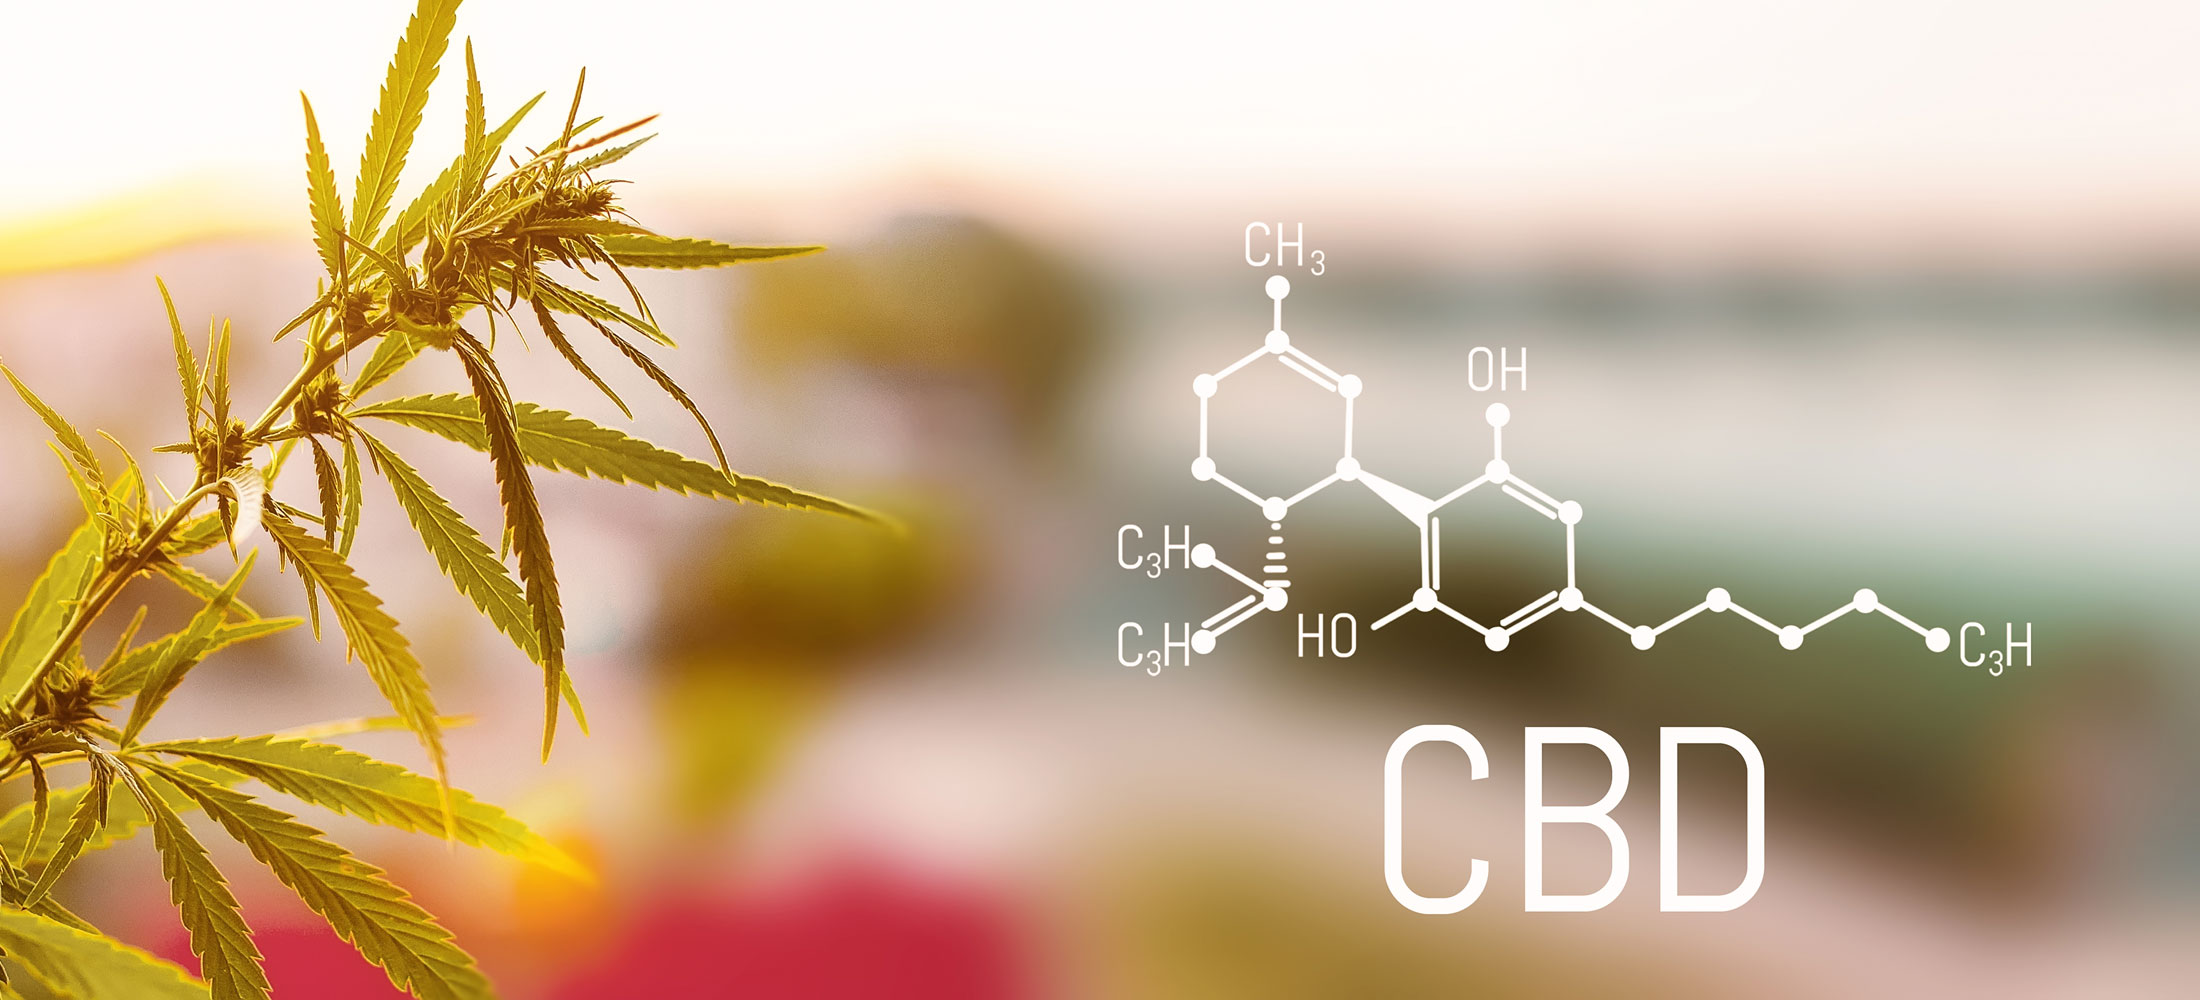 TSA Updates Policies on Travelling with CBD and Hemp Products